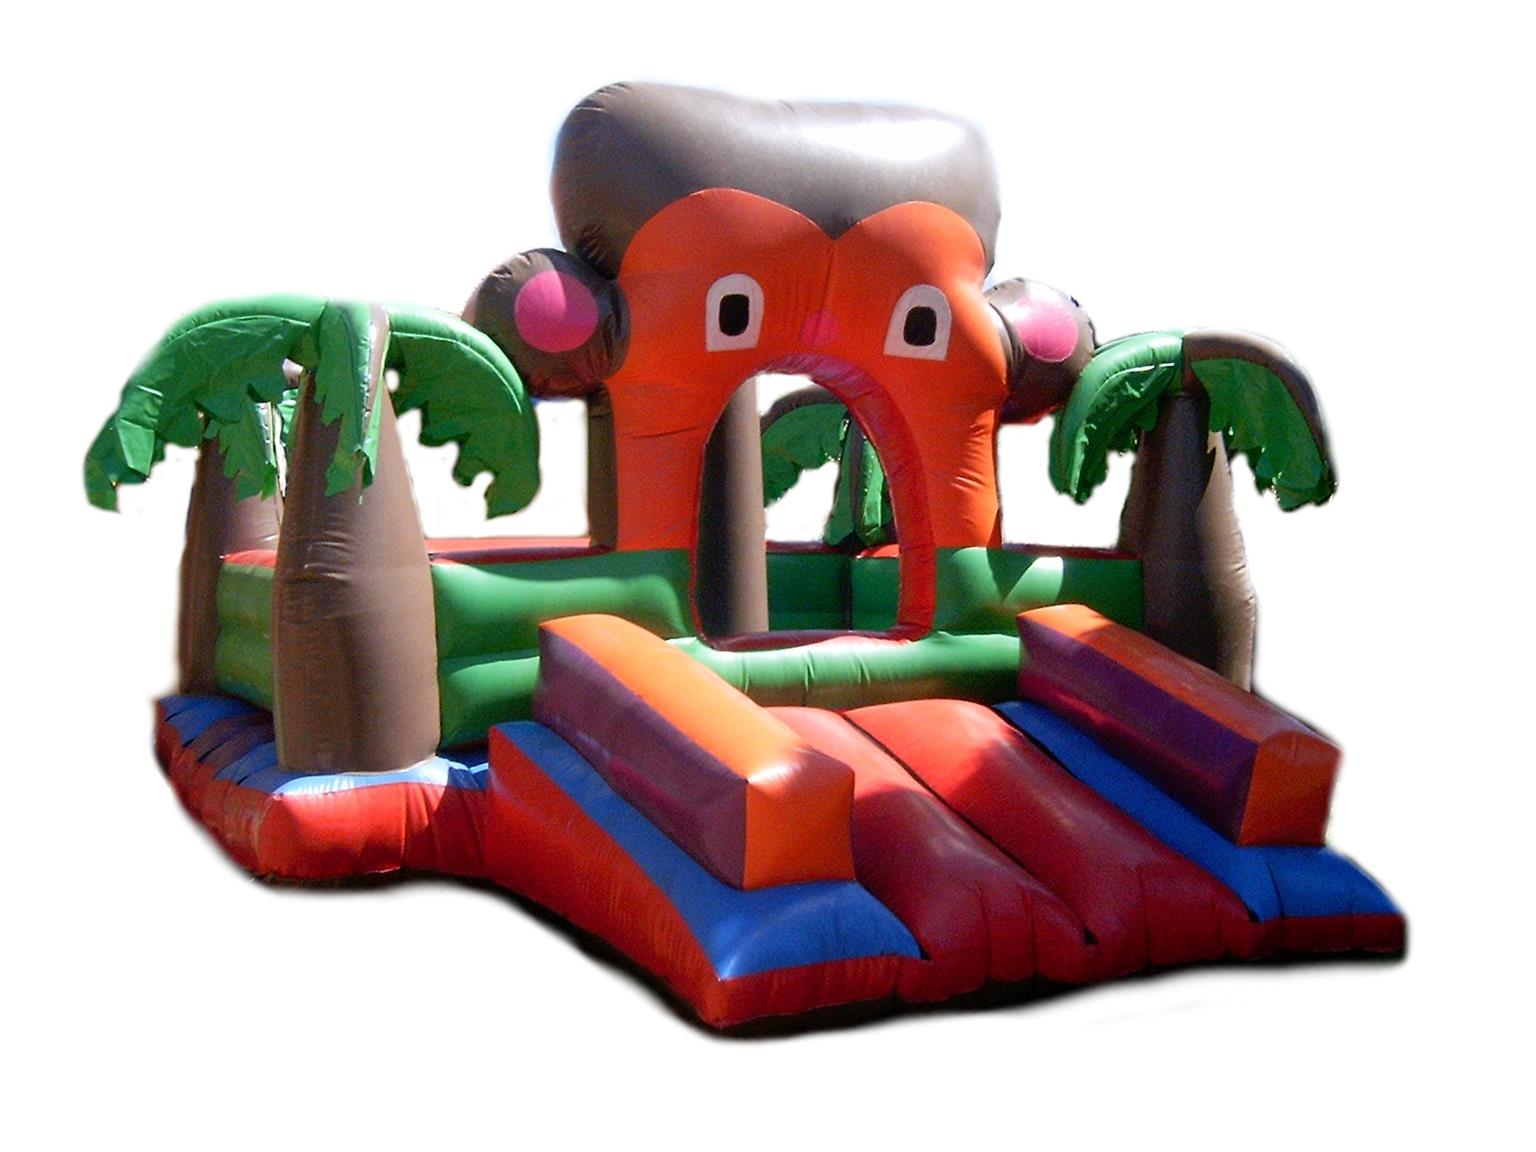 New Jumping Castles from R6500.00.  Jumping Castle Factory.  Sales - Repairs - Hire and Rentals